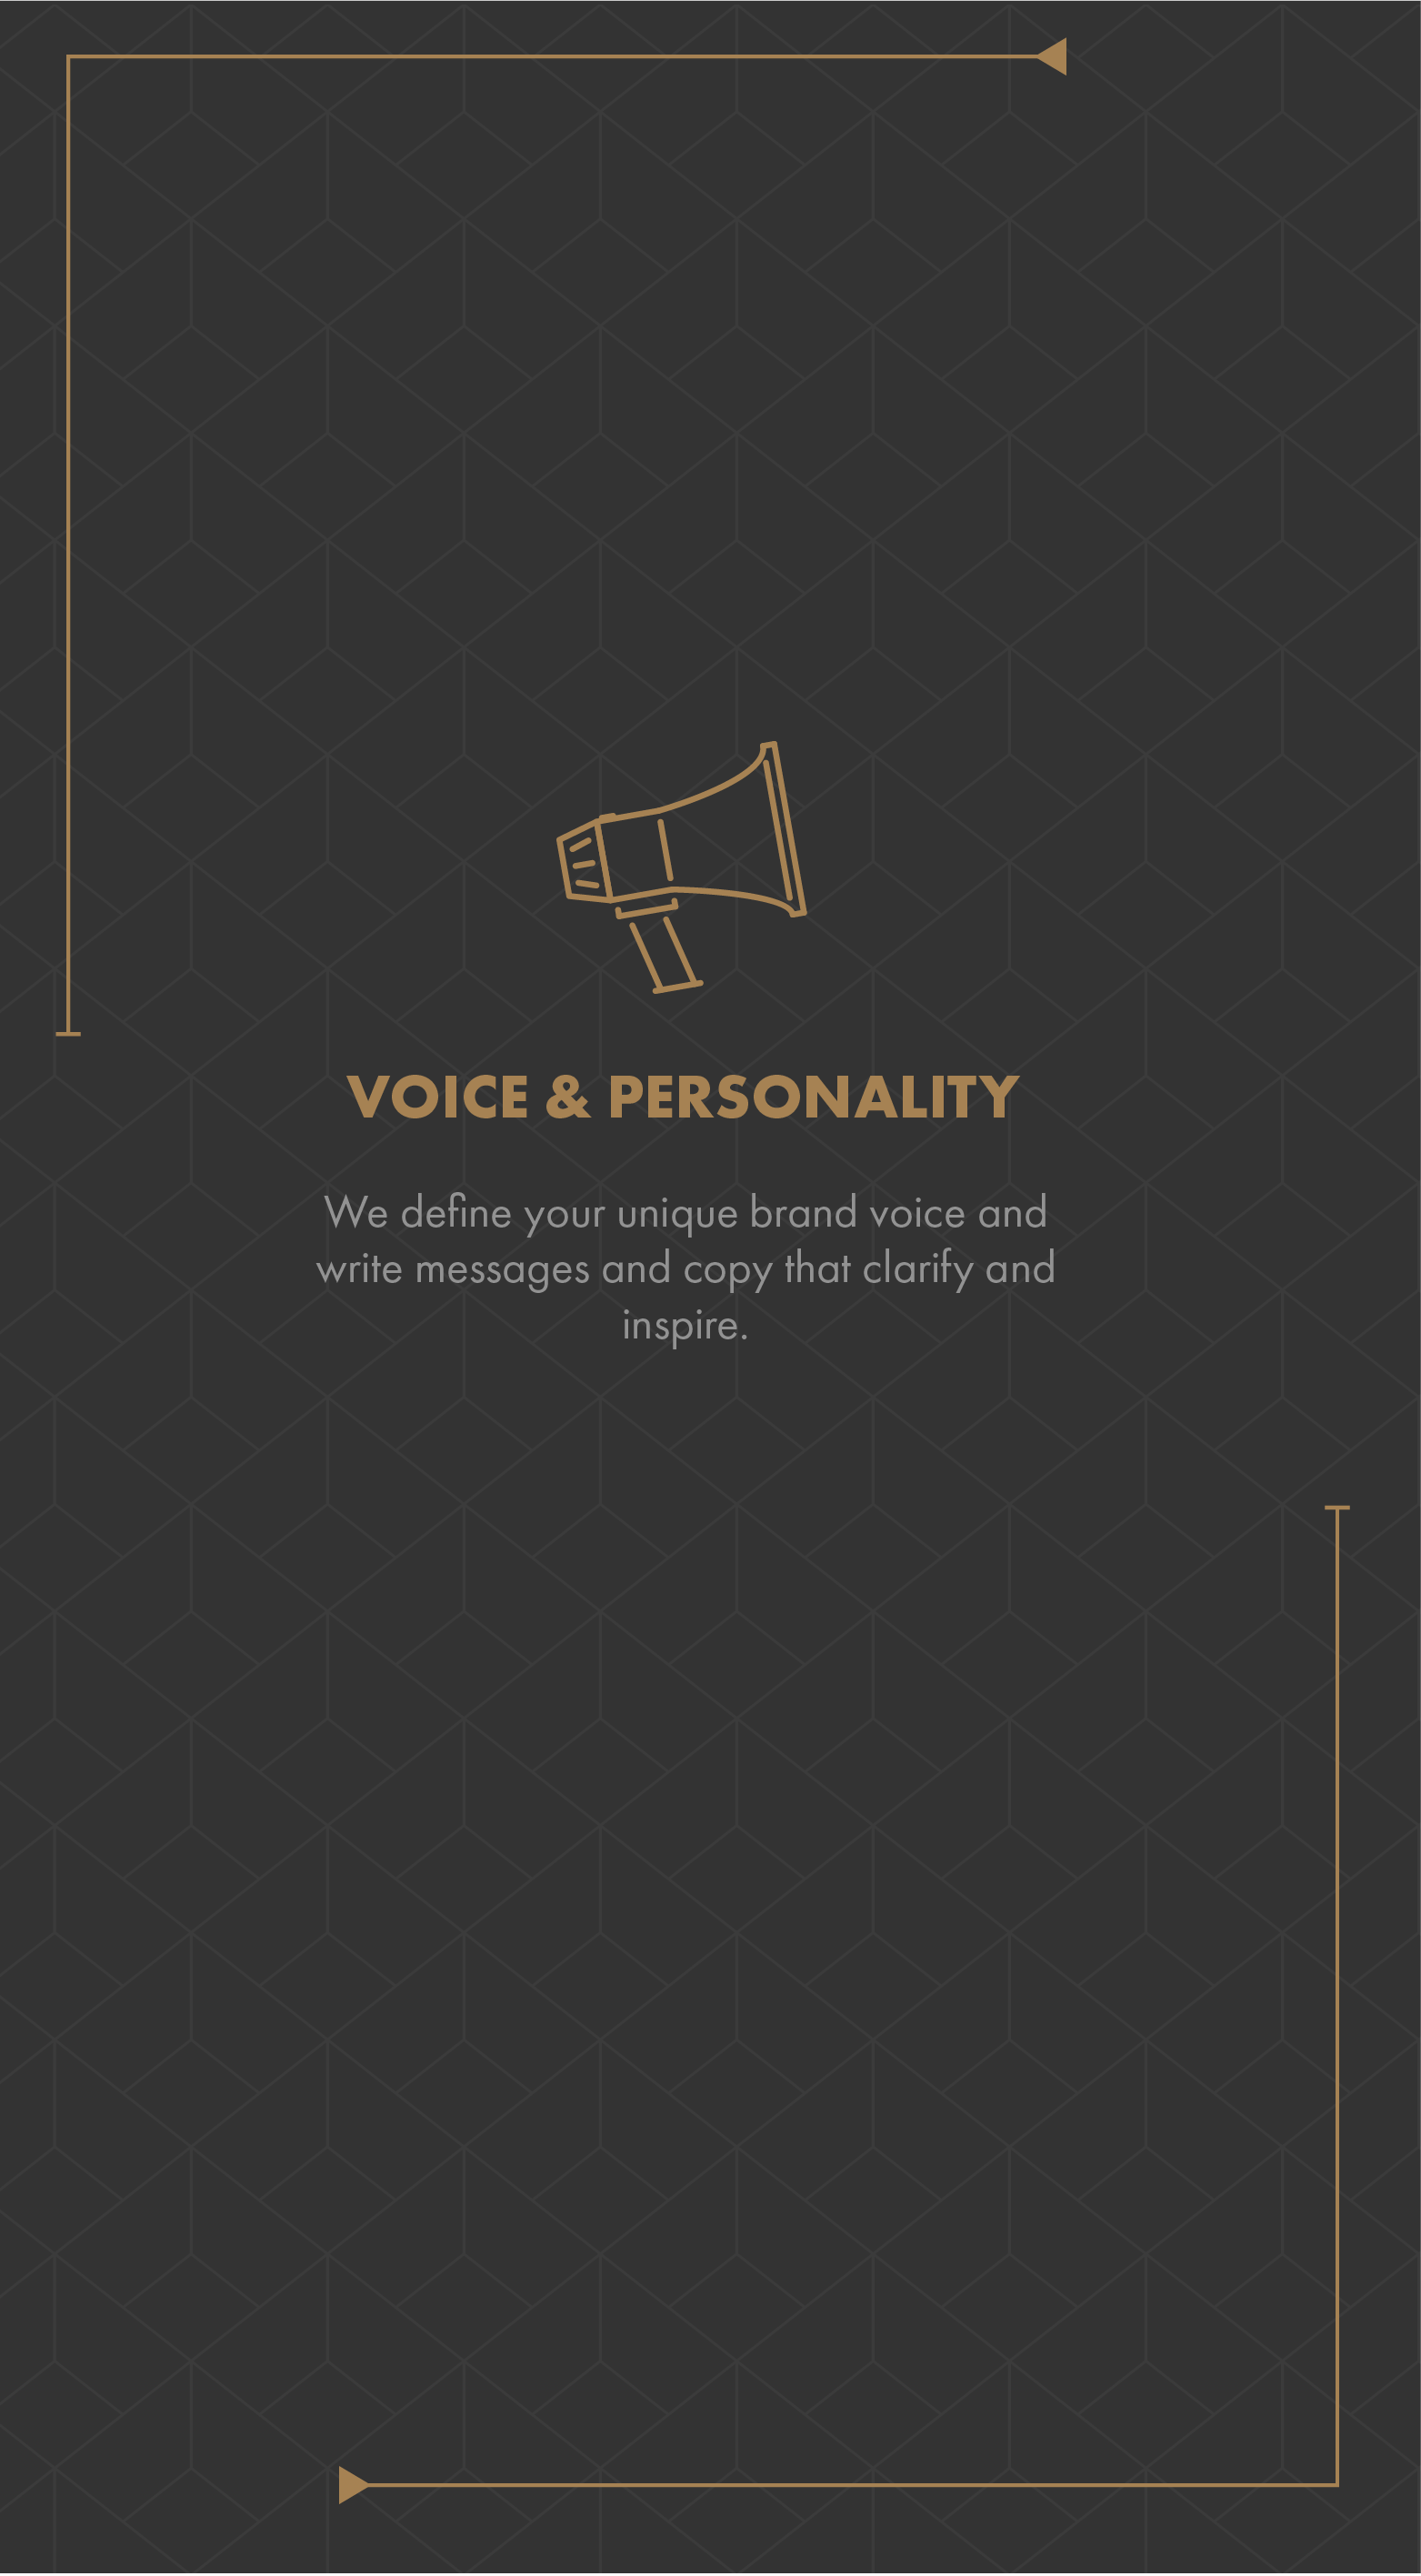 Voice&Personality_1.png